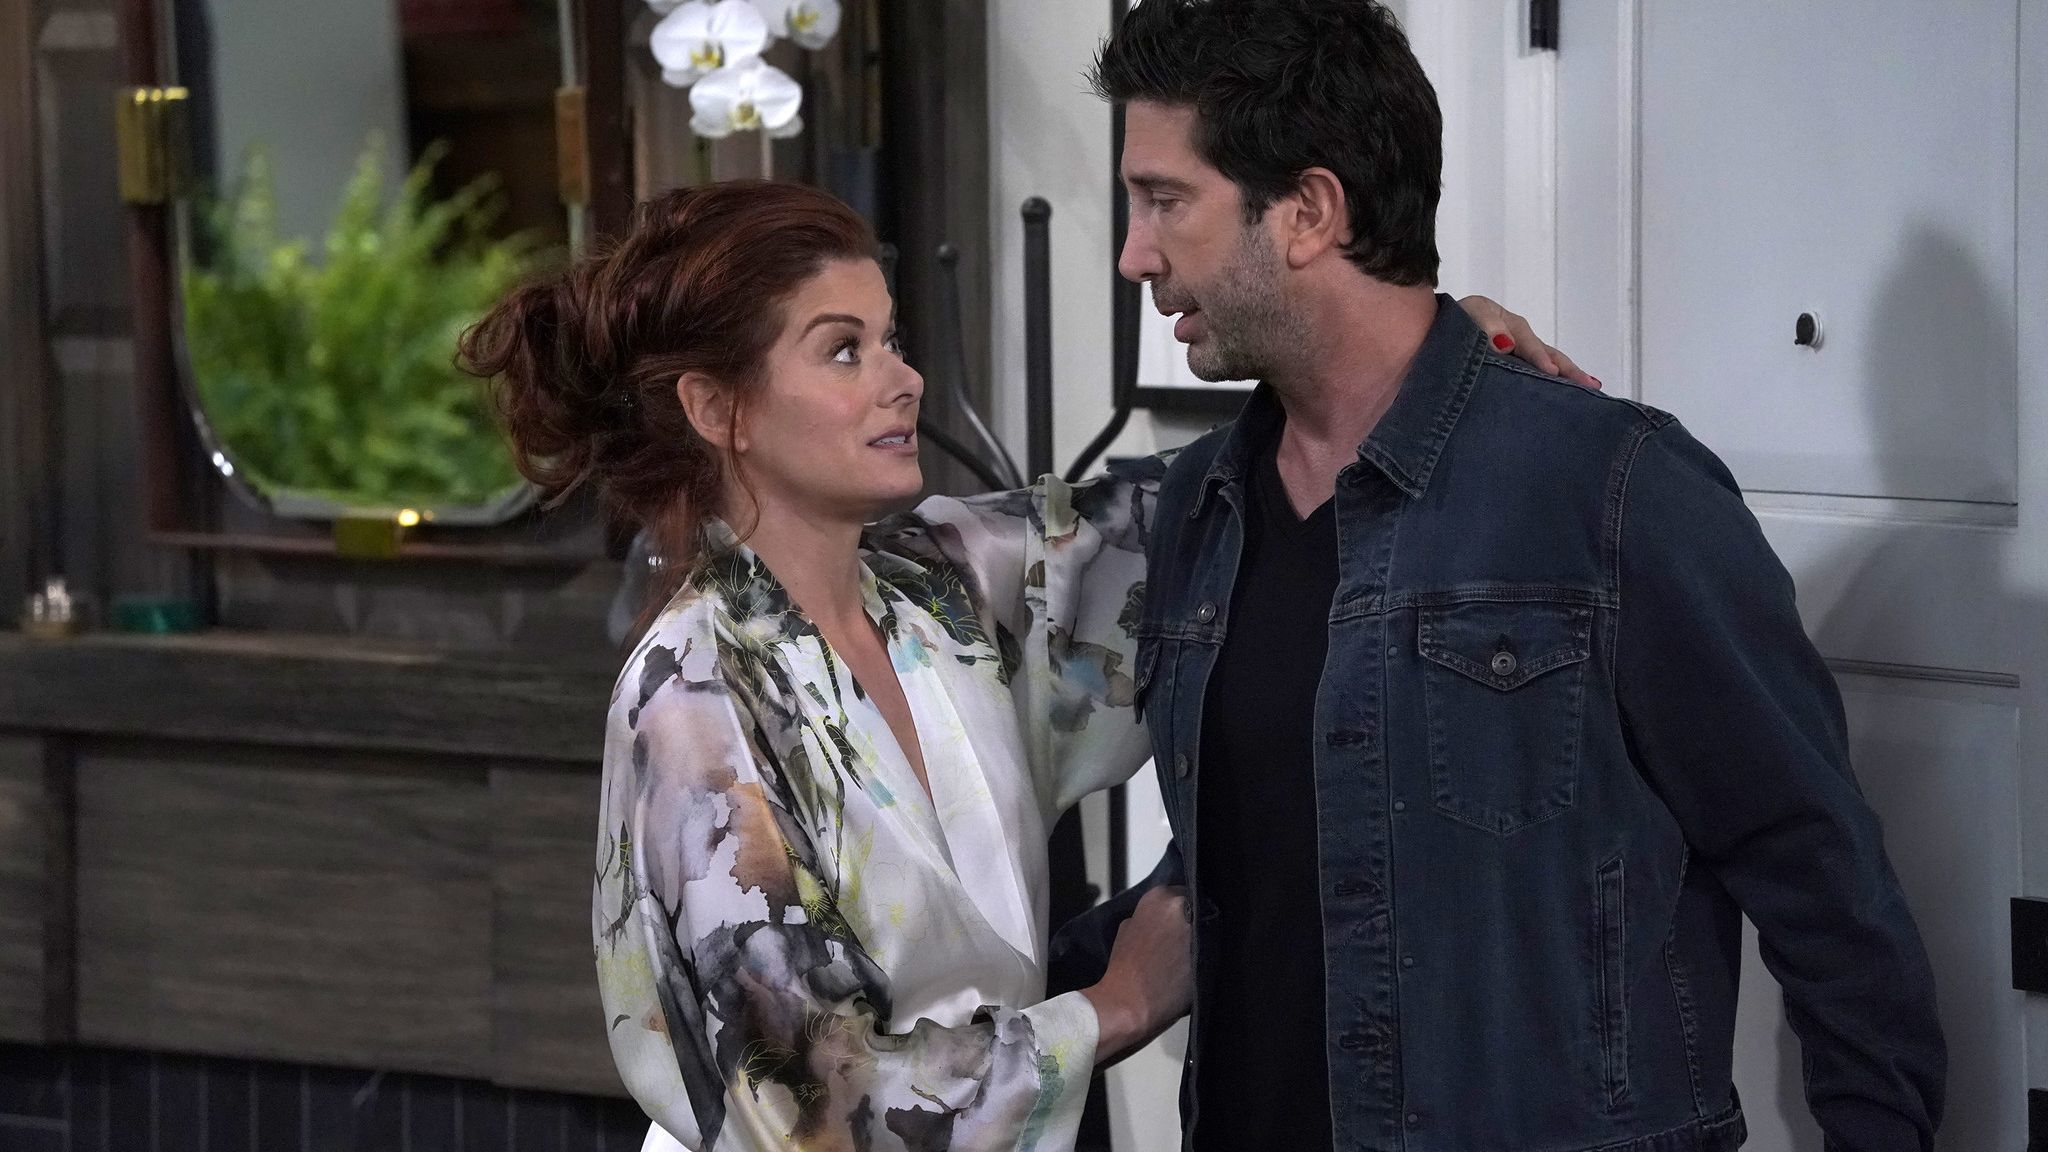 Debra Messing on her Golden Globes nomination, and the 'Will &Grace' tradition of losing out on awards night